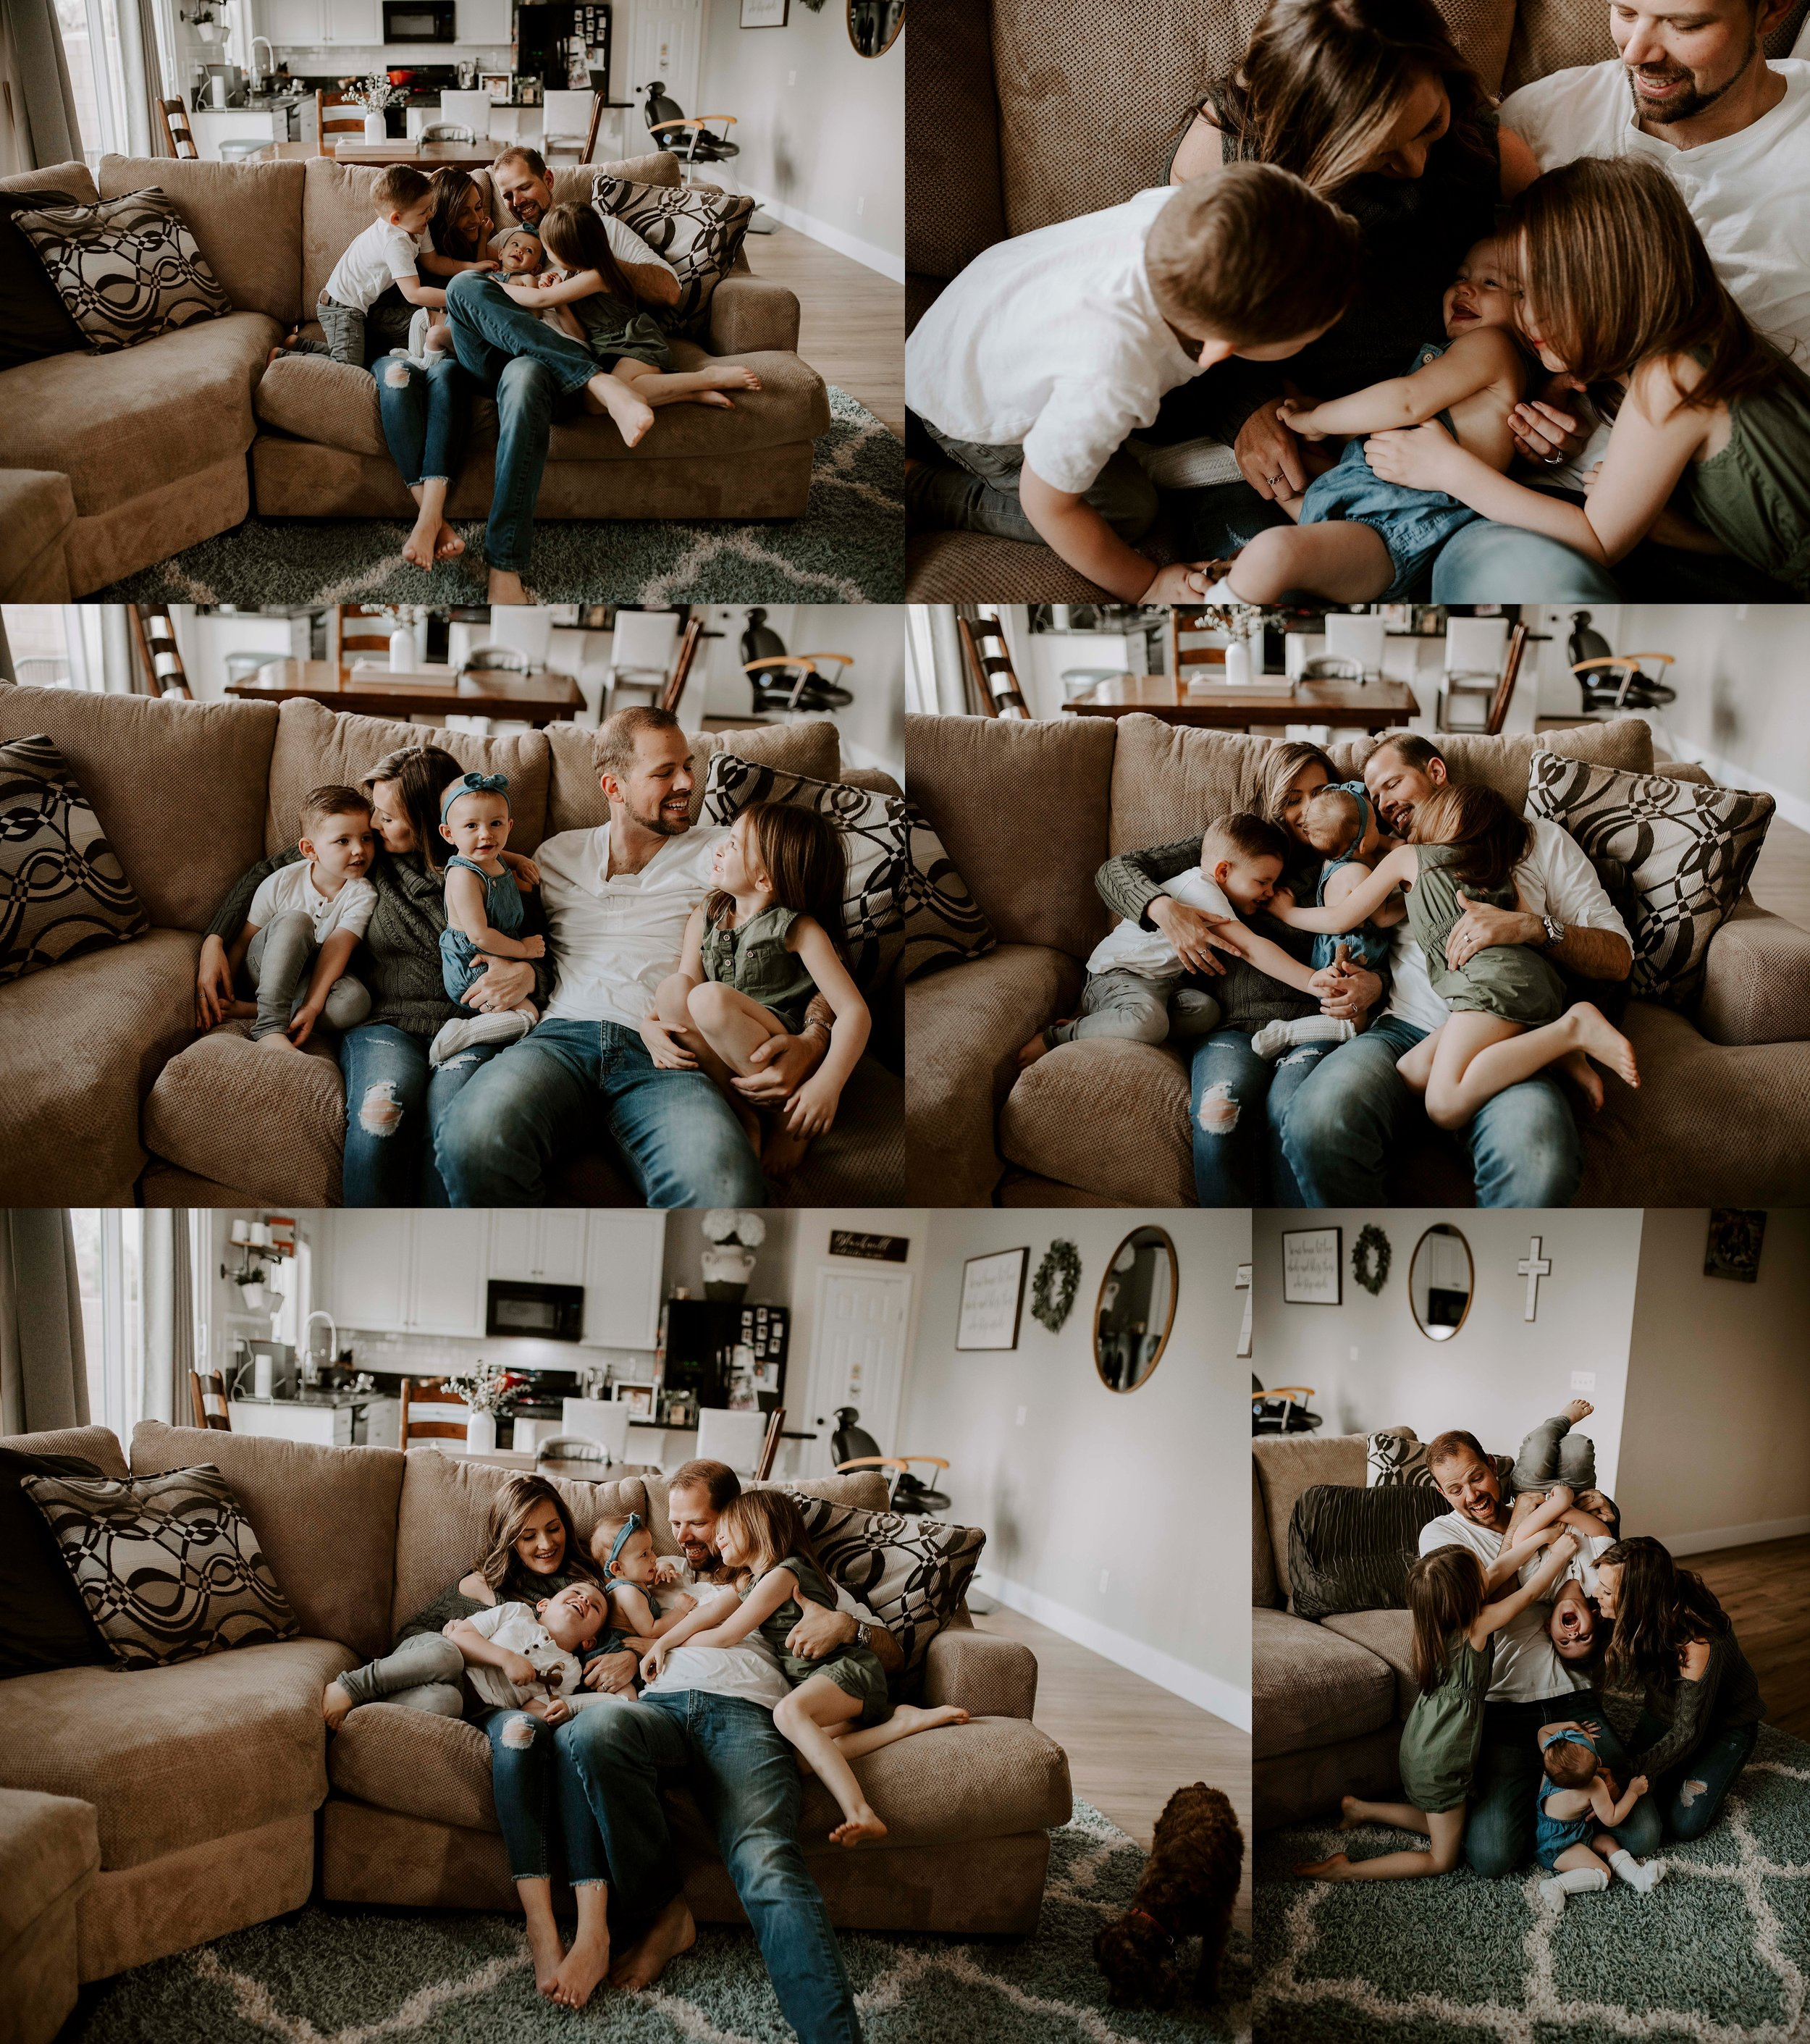 Pure love, joy and perfection. I can't get over how beautiful this family is!!!!!! Couldn't have been more thankful to capture these moments and be so welcomed into their wonderful home.